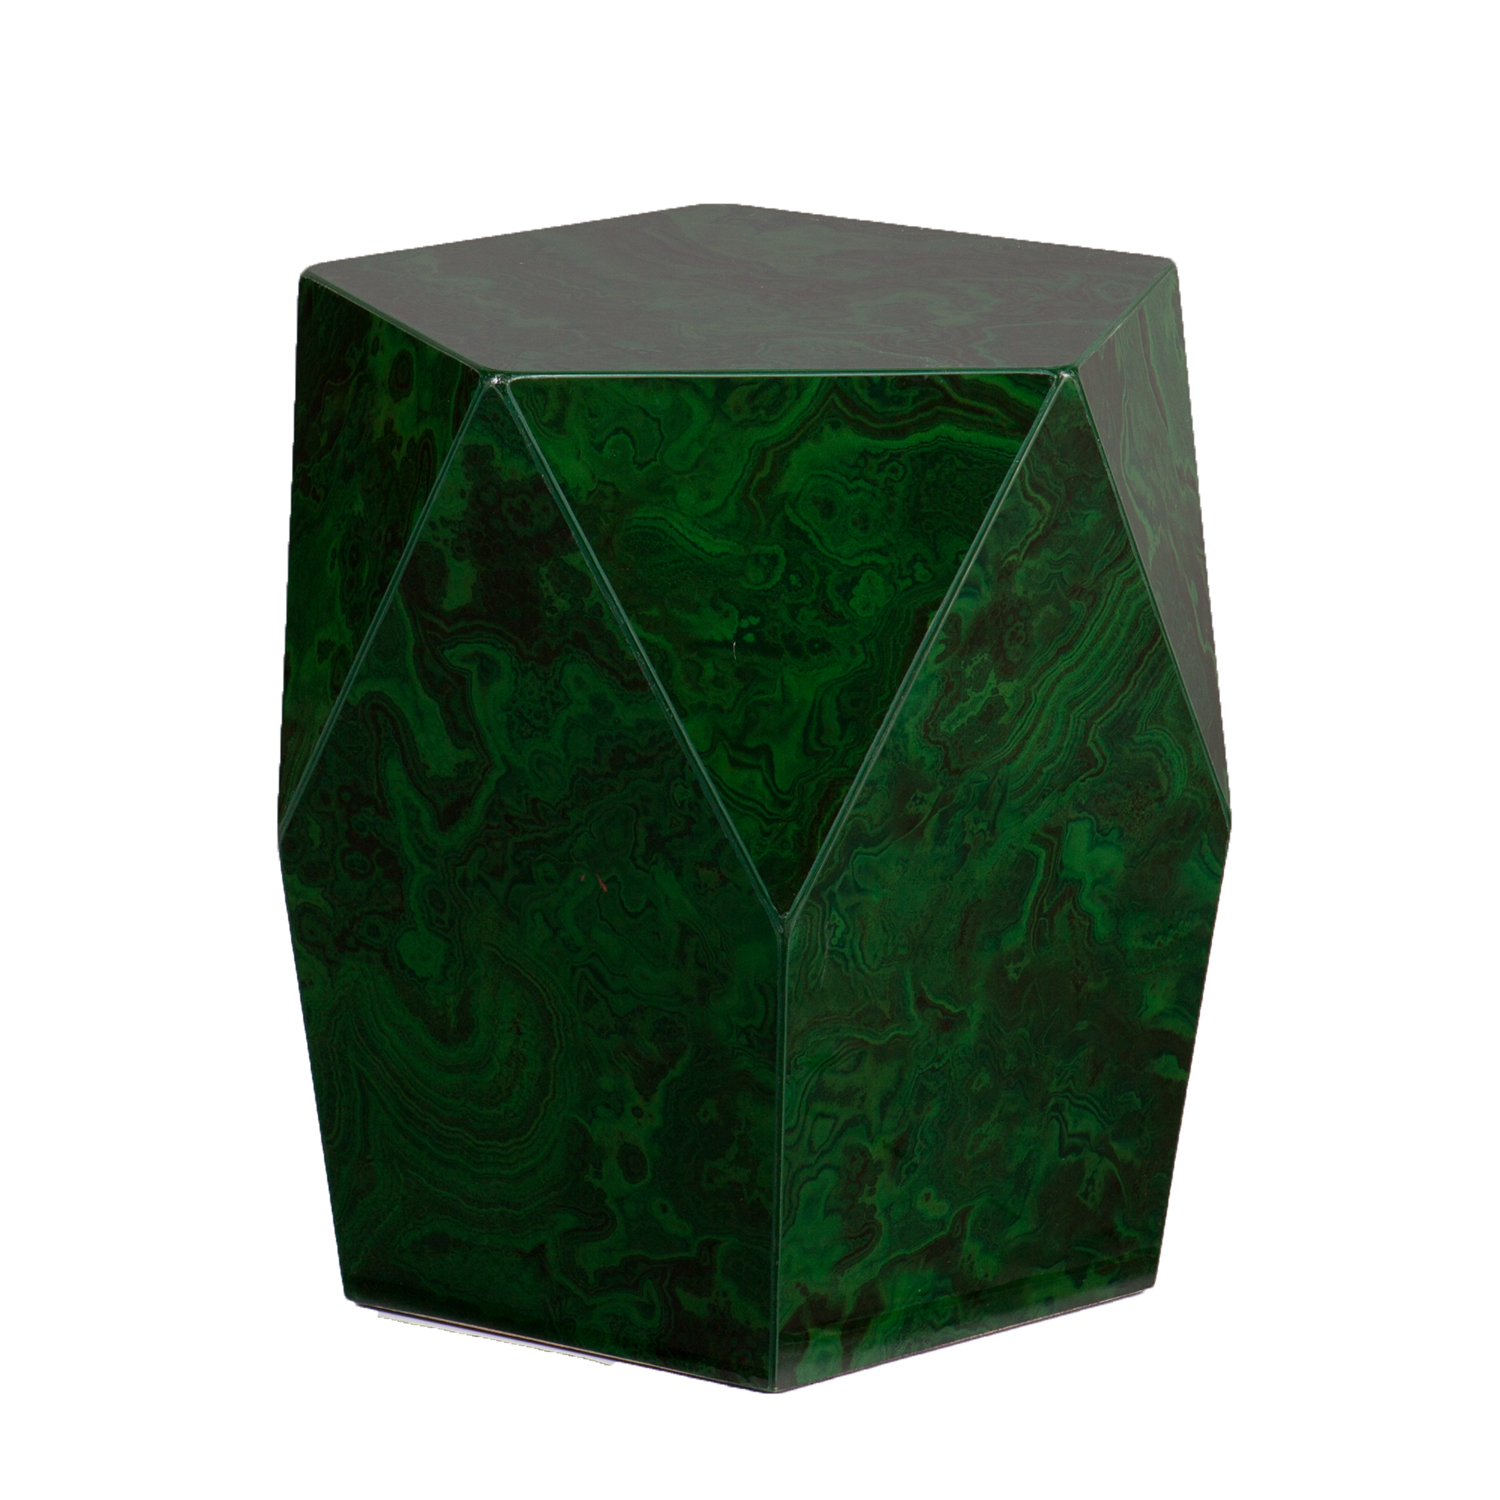 roxbury faux stone accent table green malachite emerald assembly help huge wall clock home goods decorative pillows wireless floor lamp west elm hamilton leather sofa loveseat